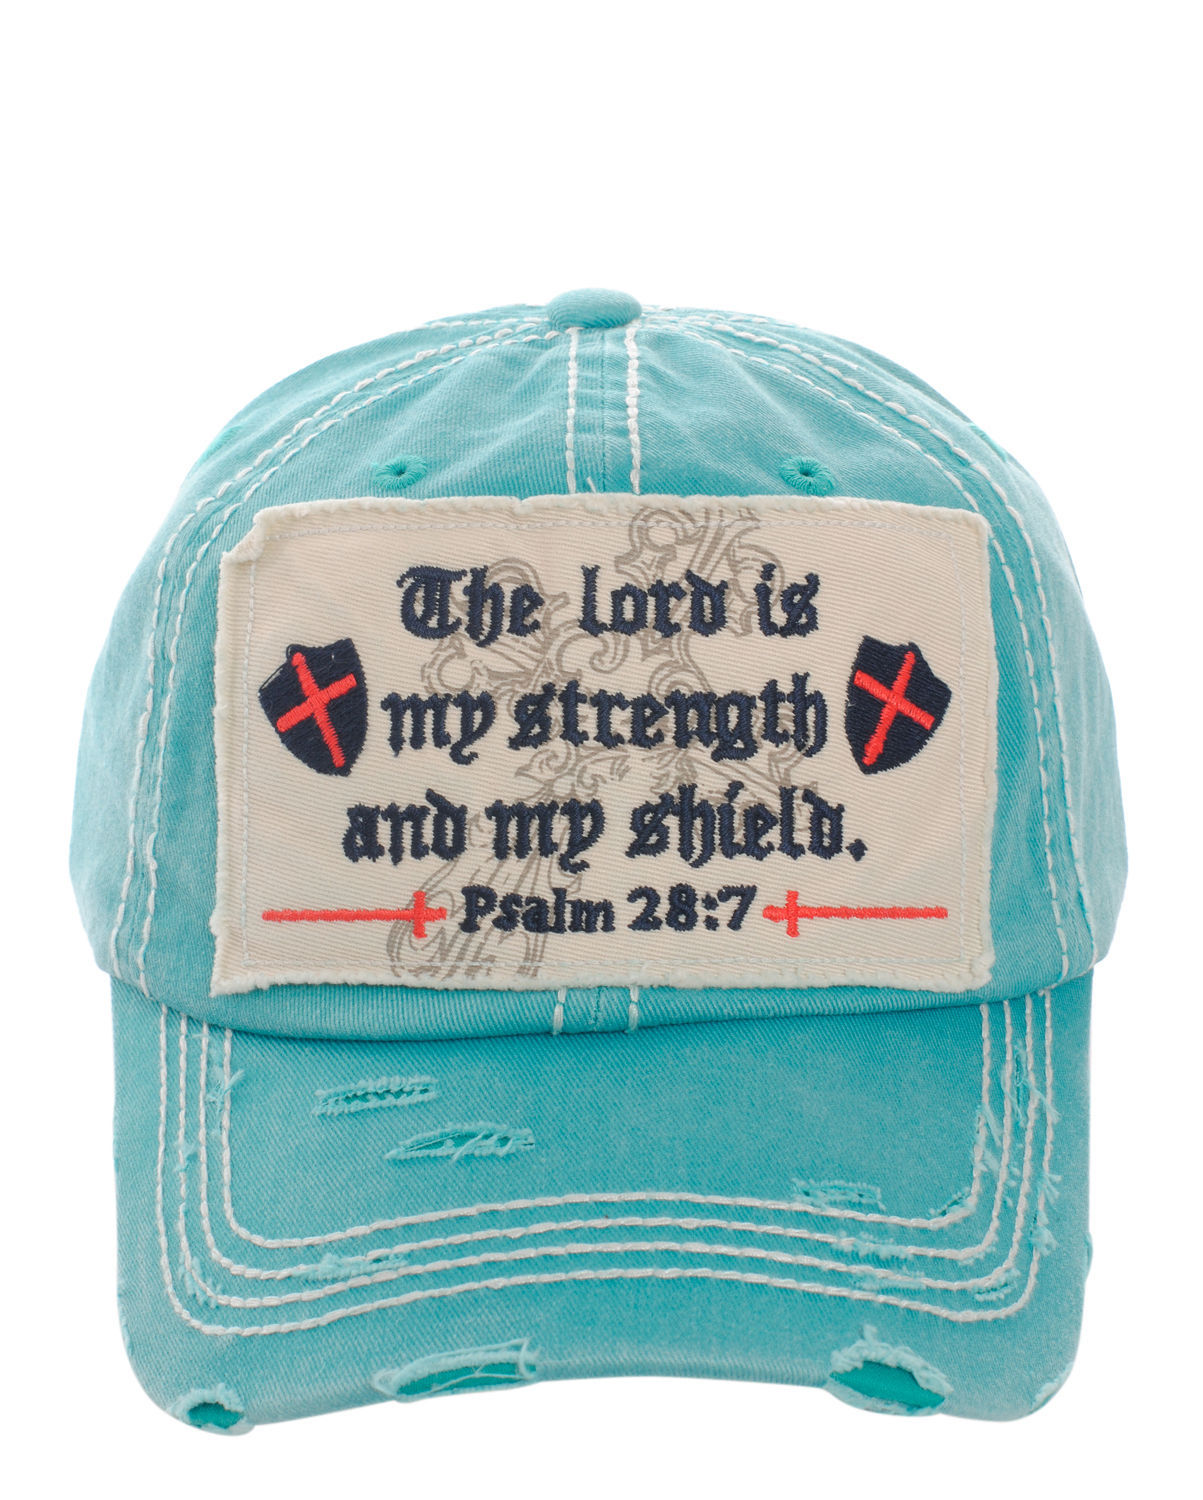 Distressed Vintage Style Bible Verse Psalm 28:7 Baseball Cap Hat Turquoise Blue